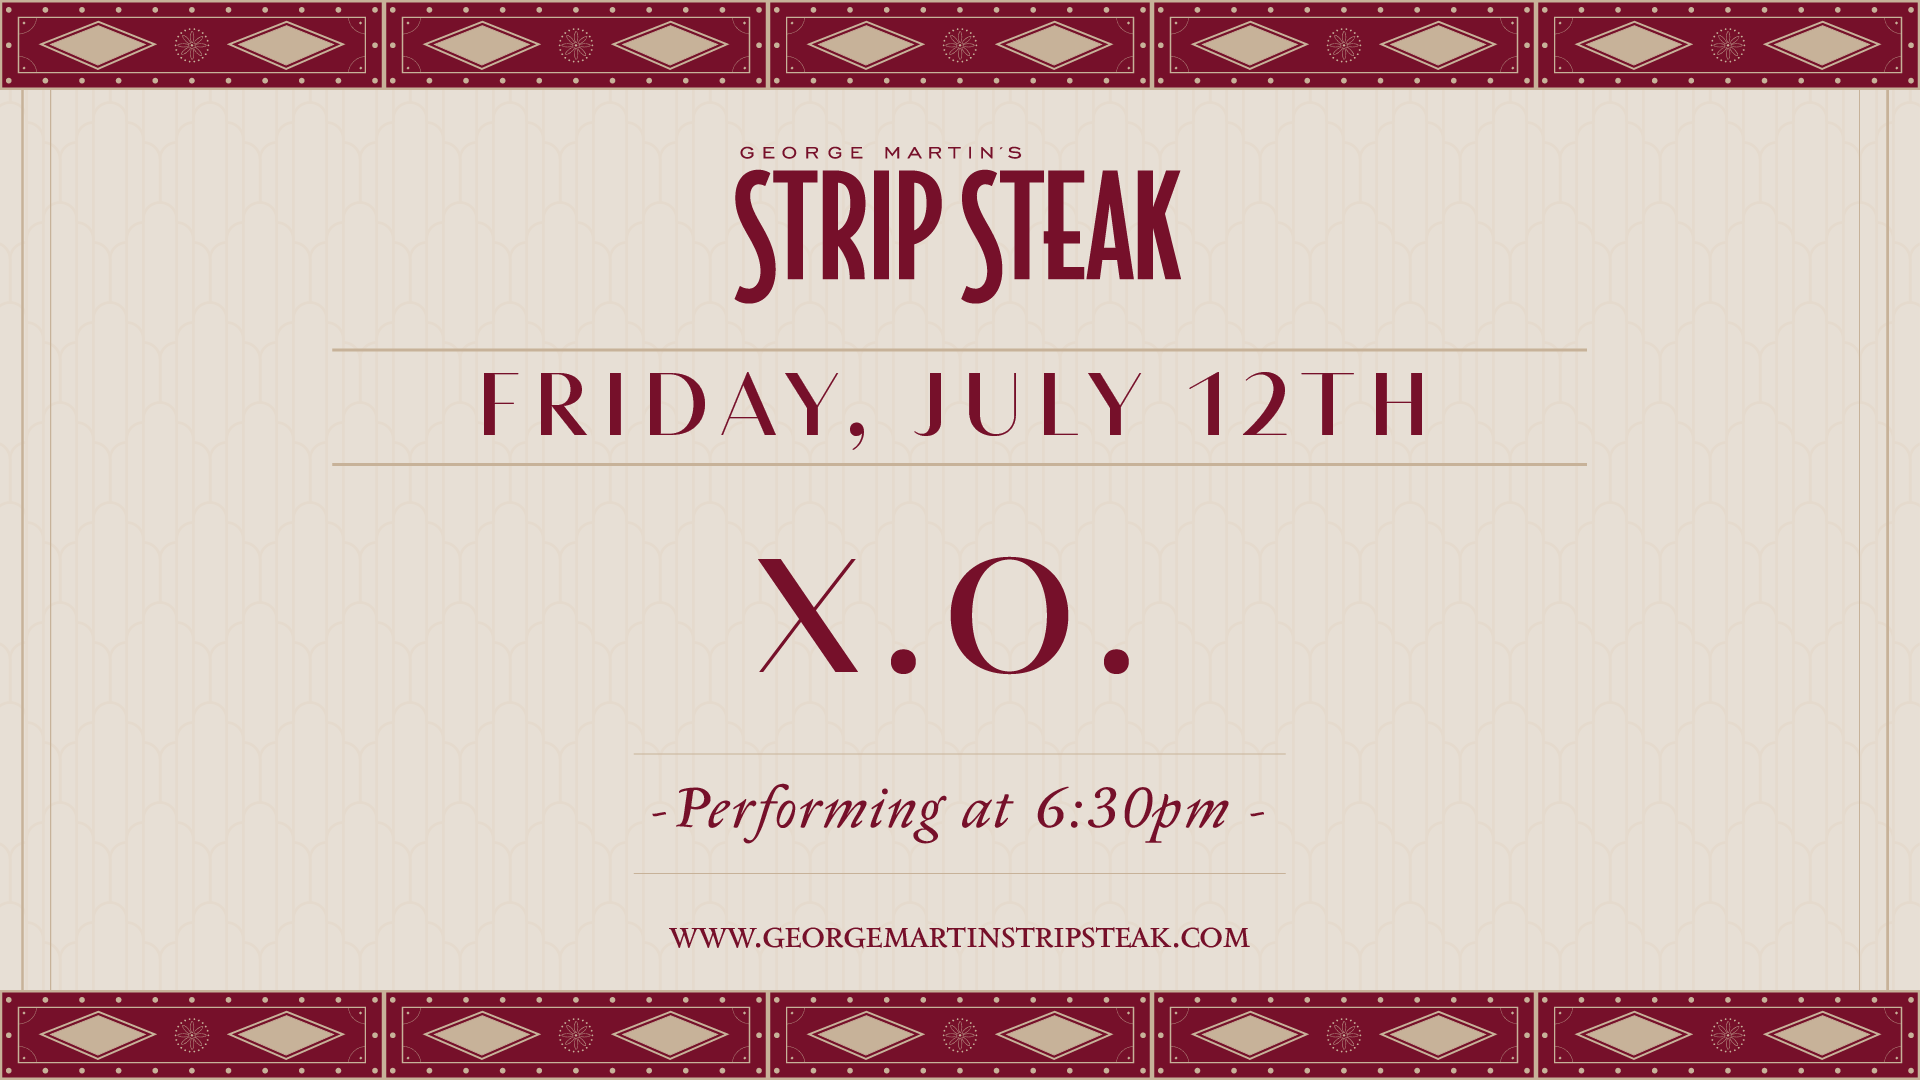 Flyer for live music with XO on July 12th at 6:30pm.